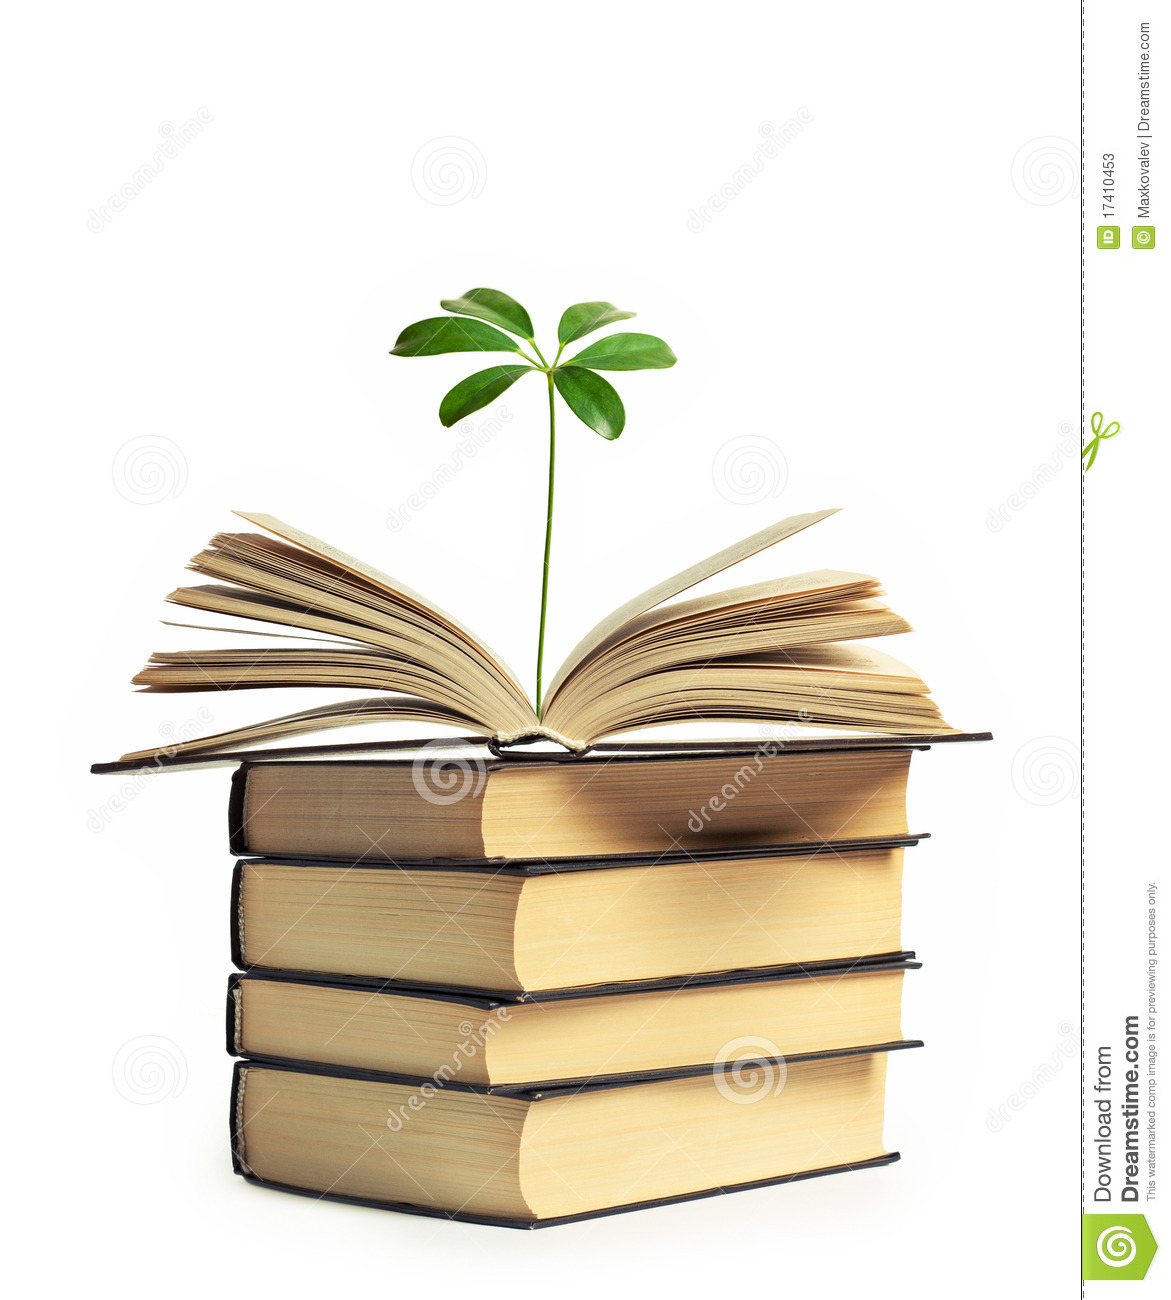 a515bc0533841 A Flower Growing Out Of An Open Book Stock Image - Image of green ...